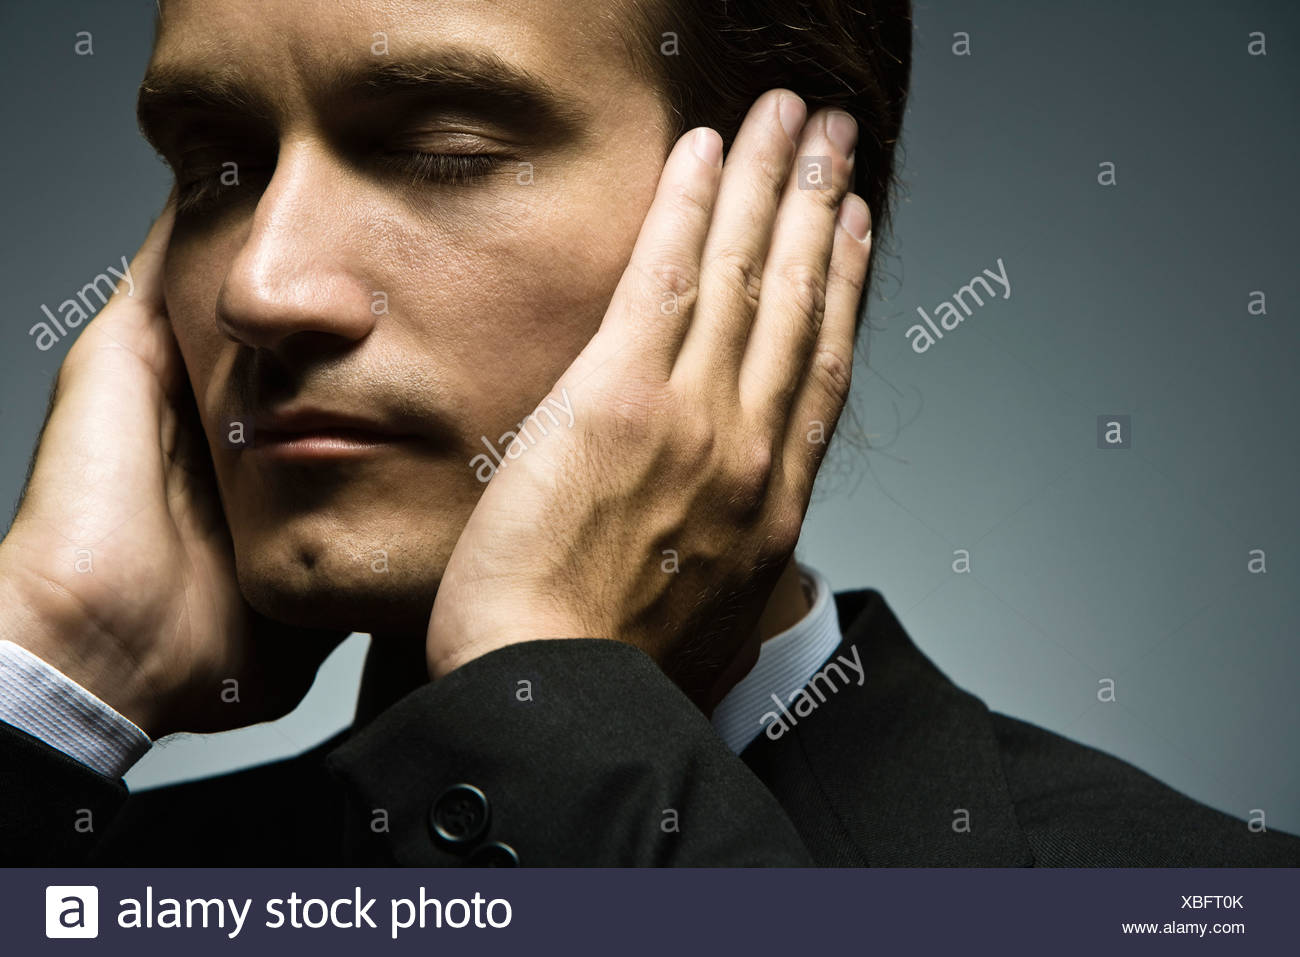 Man with hands held over ears and eyes closed - Stock Image